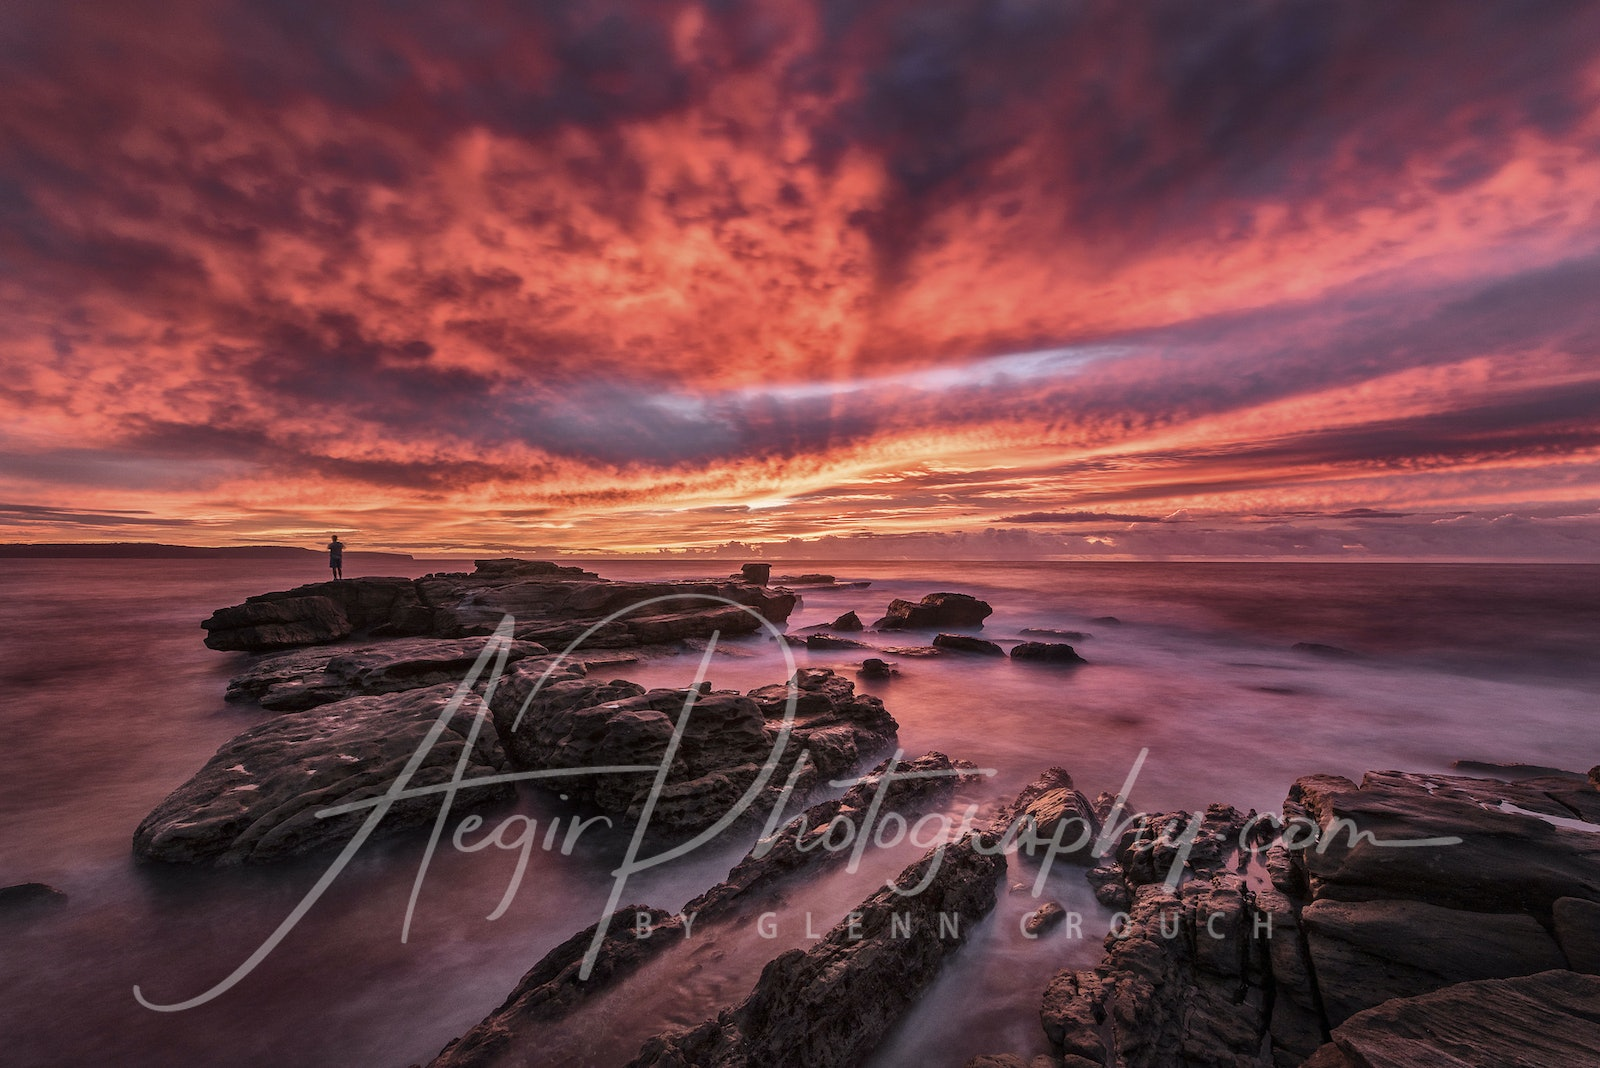 Colour Explosion - Colour bomb sunrise over Palm beach rockshelf, on the northern beaches of Sydney, Australia